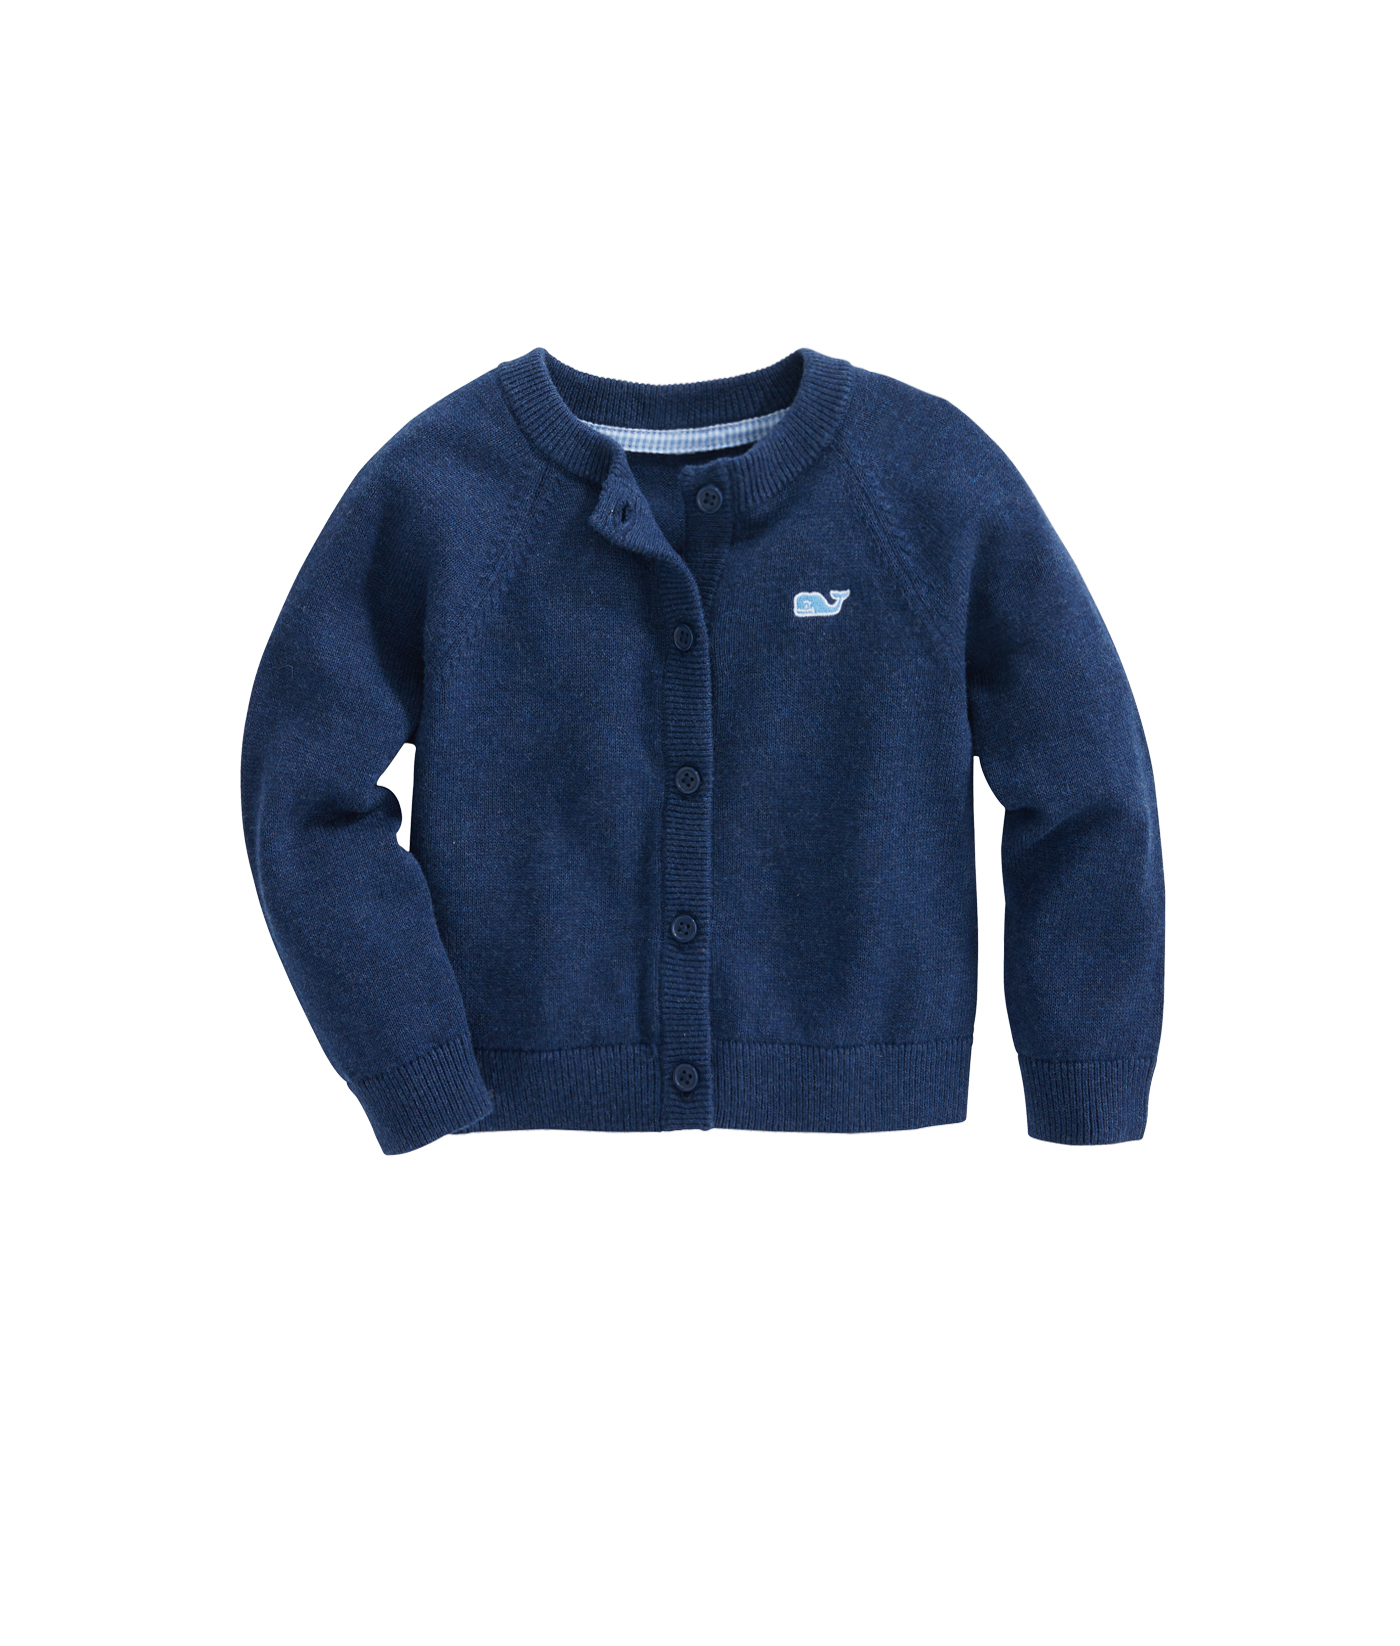 Shop Baby Girls Cardigan At Vineyard Vines